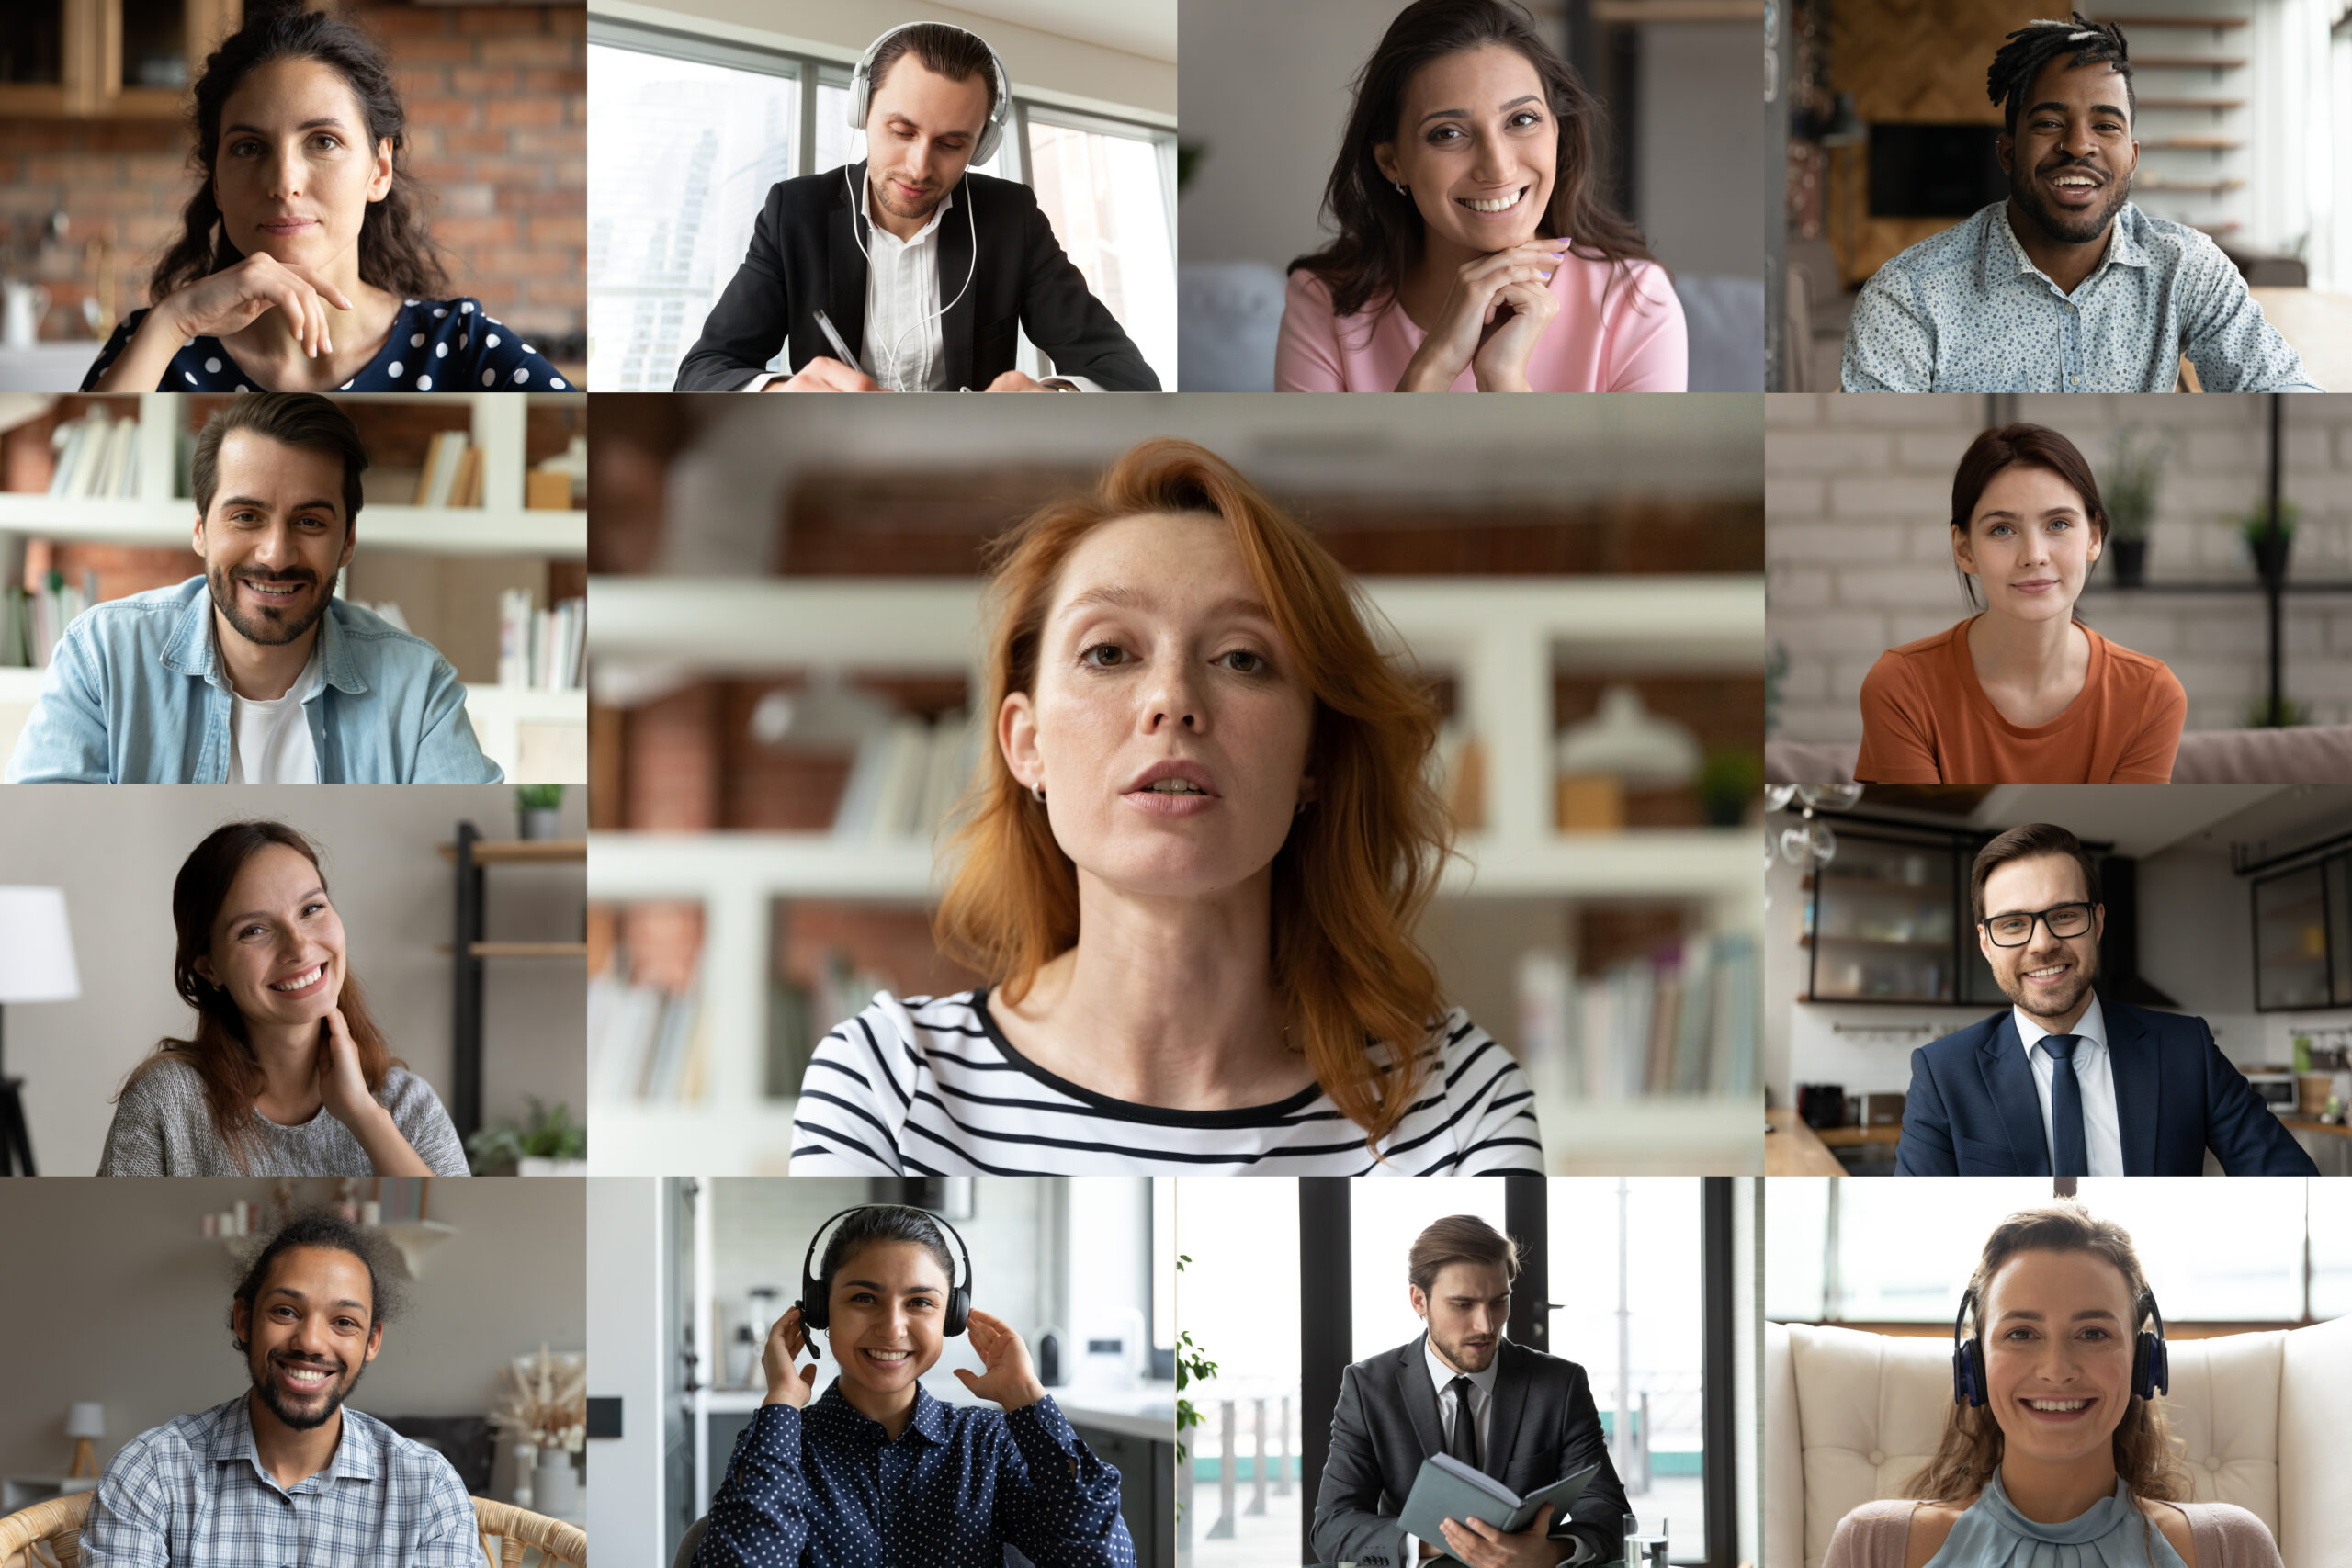 Focused,Young,Red-haired,Female,Employee,Leader,Holding,Video,Conference,Working